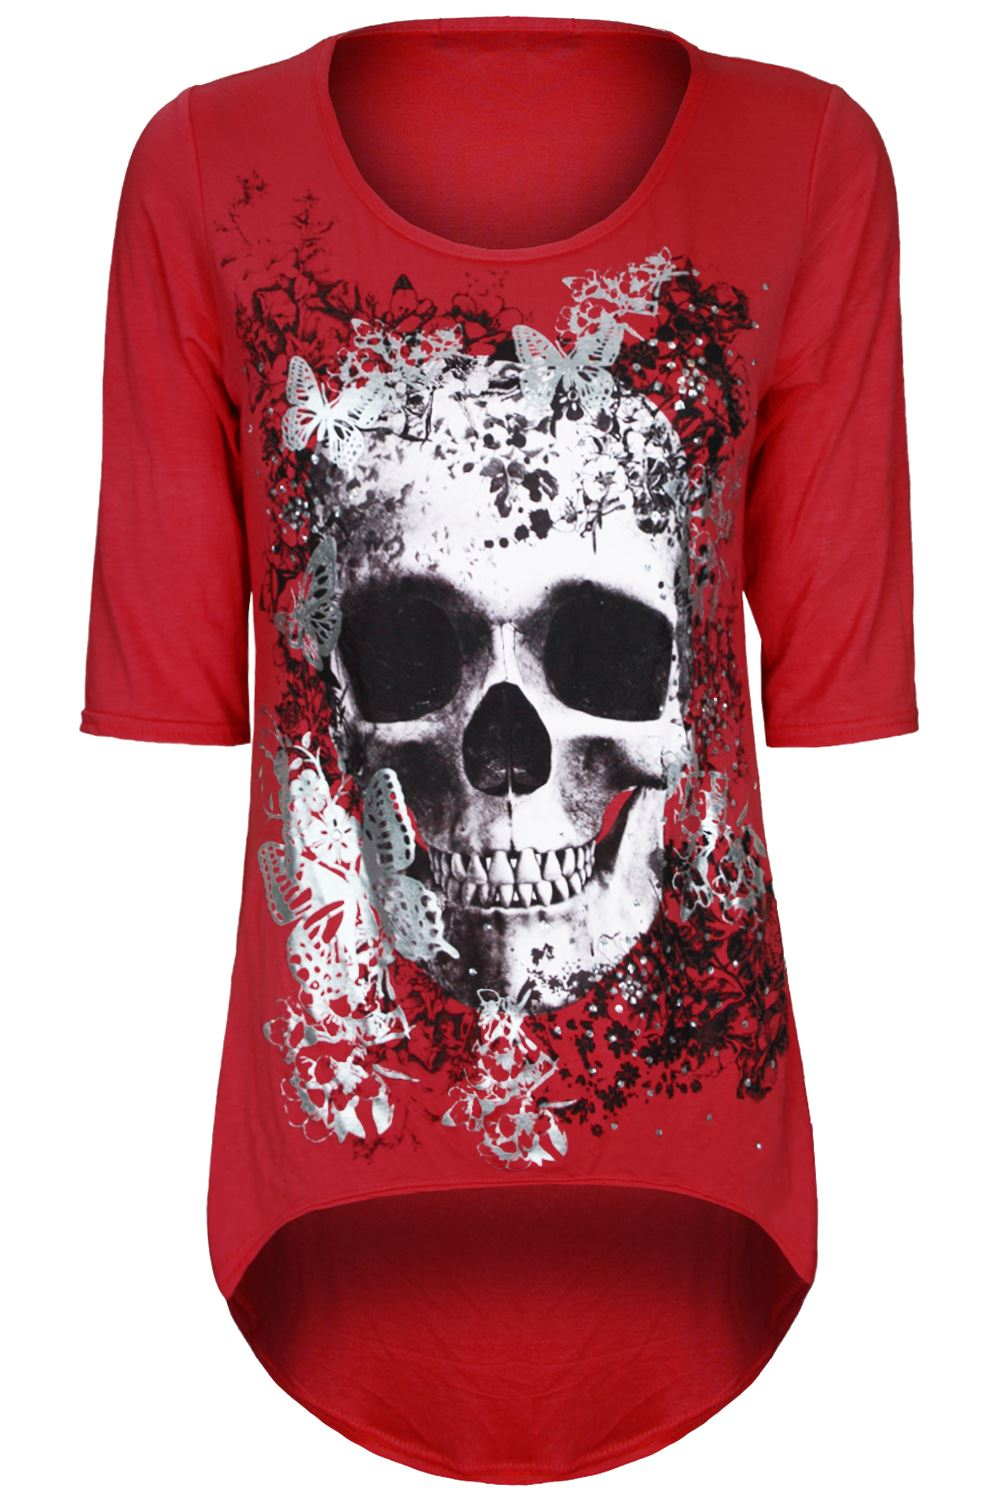 Women's Skull Tops come in an assortment of colors including black. Find a real bargain on eBay by shopping new or pre-owned women's T-shirts. Plus, Women's Skull Tops are a good choice for feeling your best thanks to some sexy new report2day.ml: $